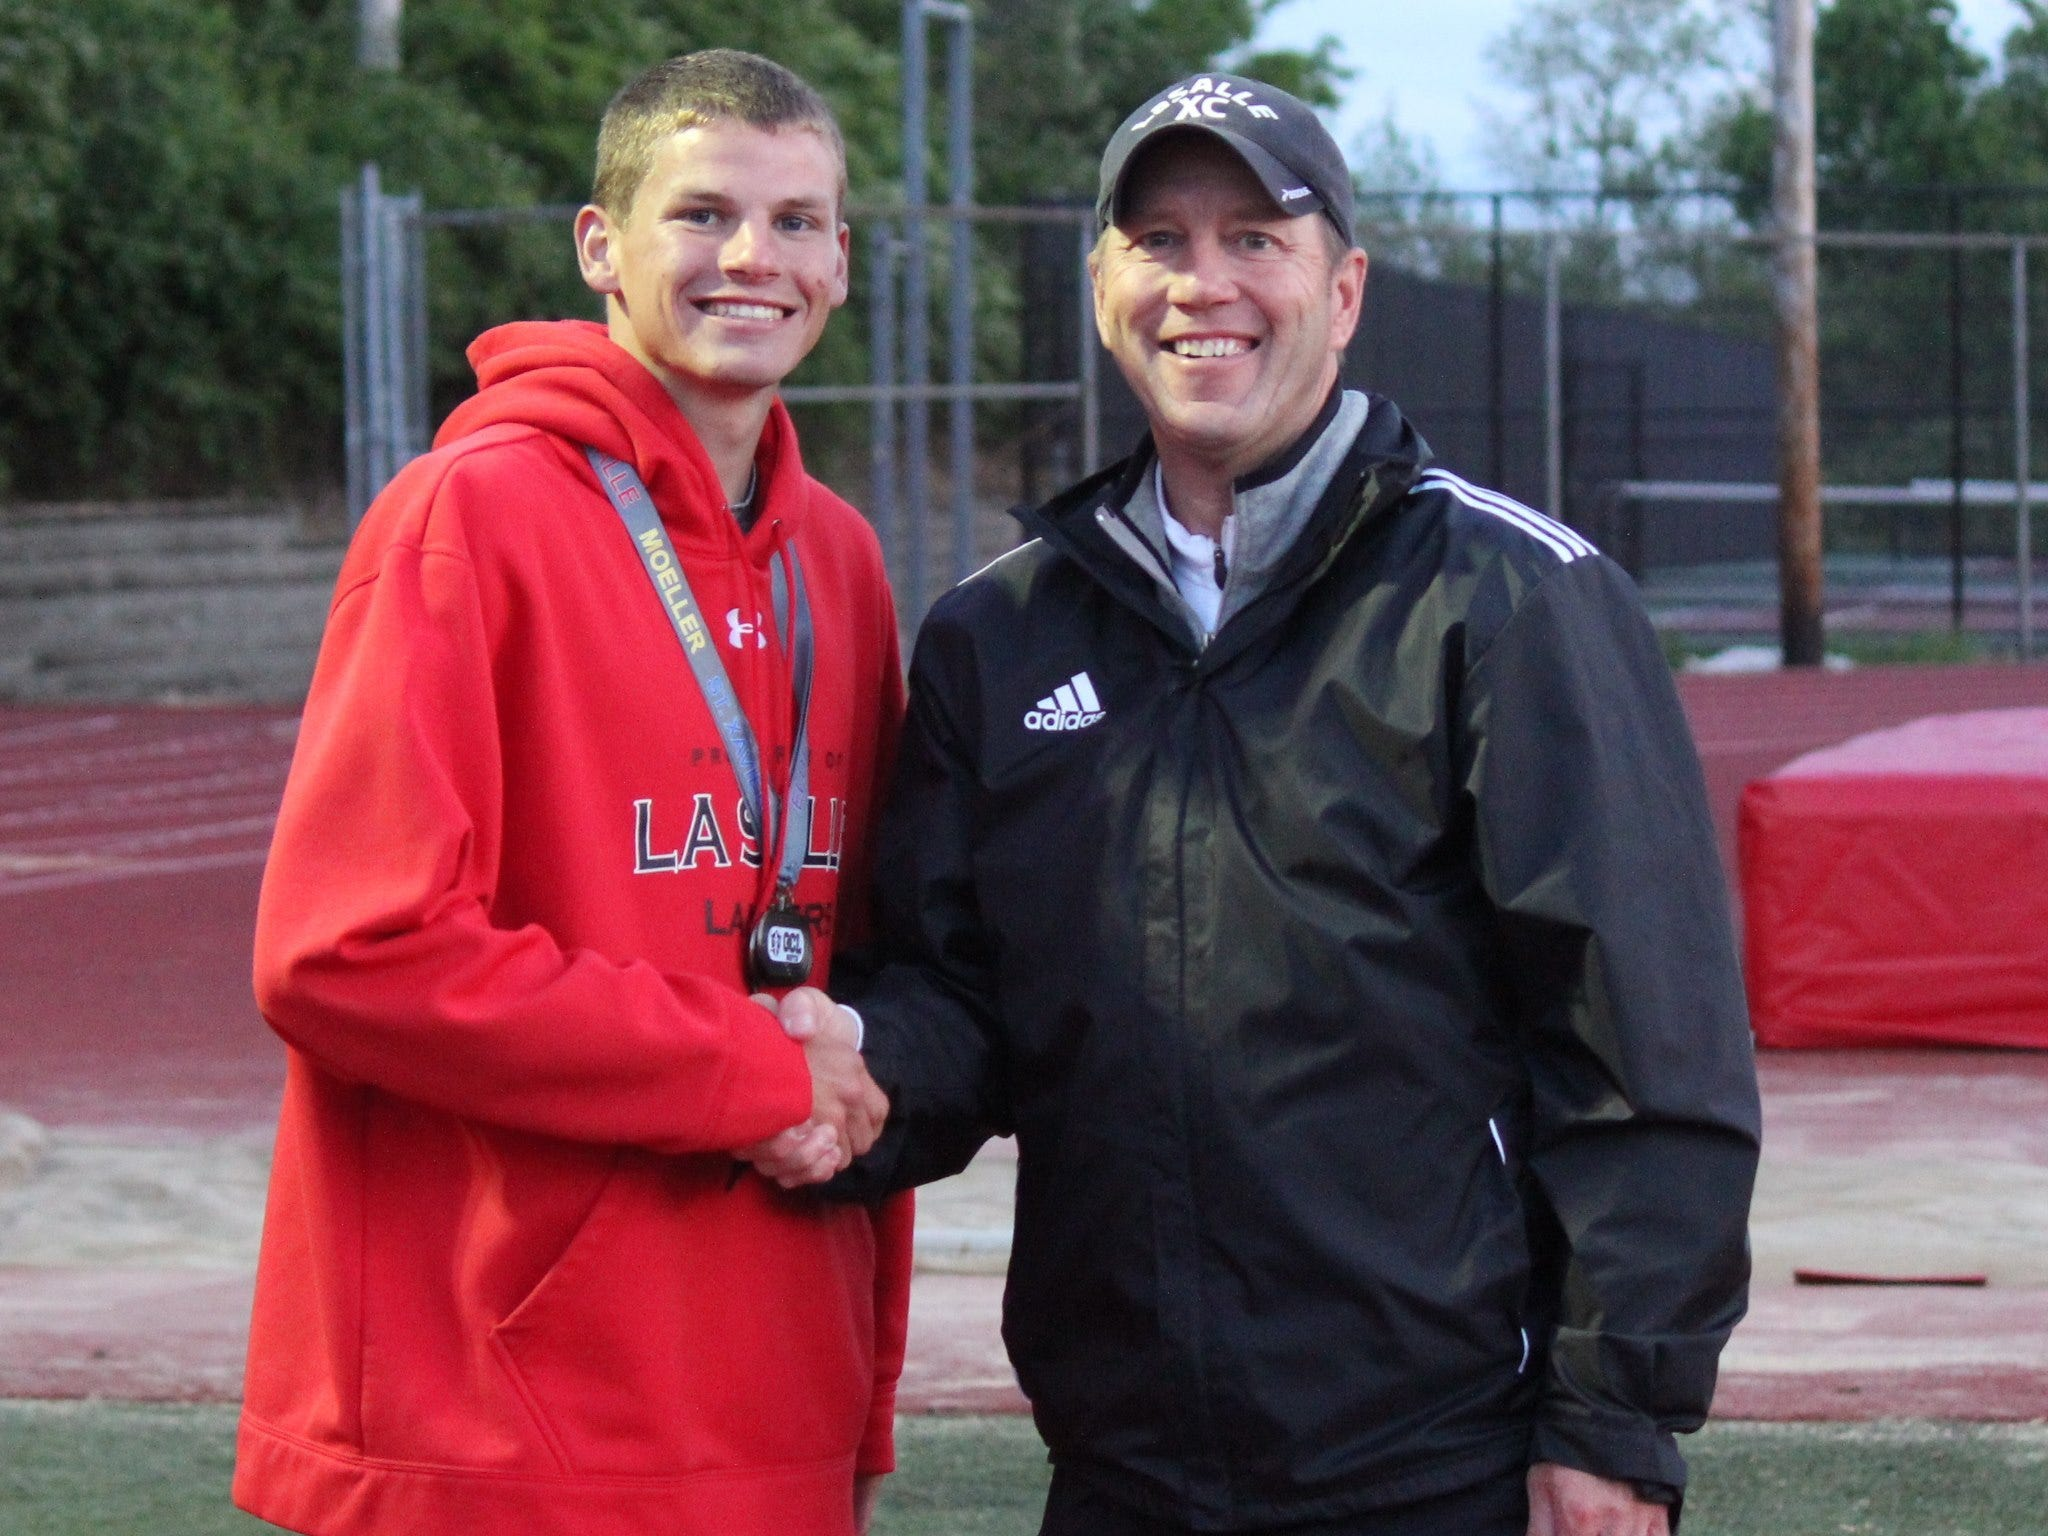 La Salle senior Tyler Harmon, a track standout for the Lancers, pictured with La Salle coach Frank Russo after a meet in the 2014 season.